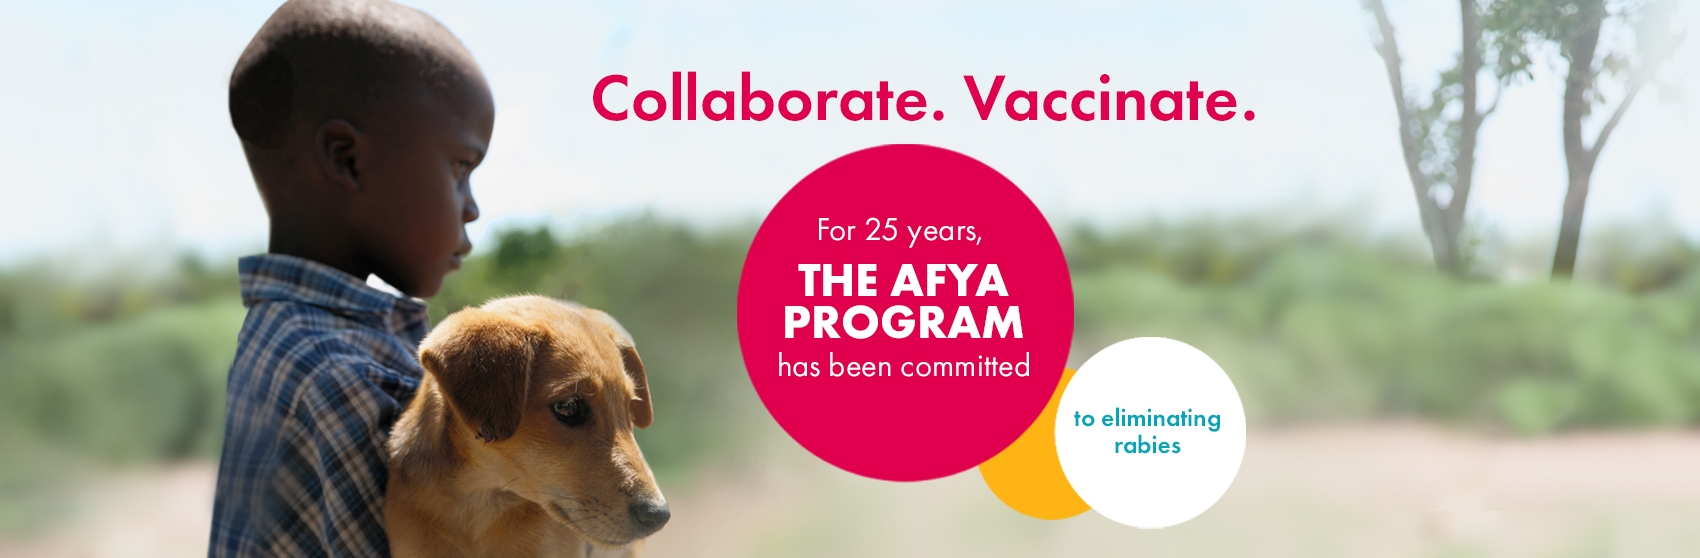 A boy and his dog in the Serengeti showing that for 25 years, The Afya Program has been committed to eliminating rabies.